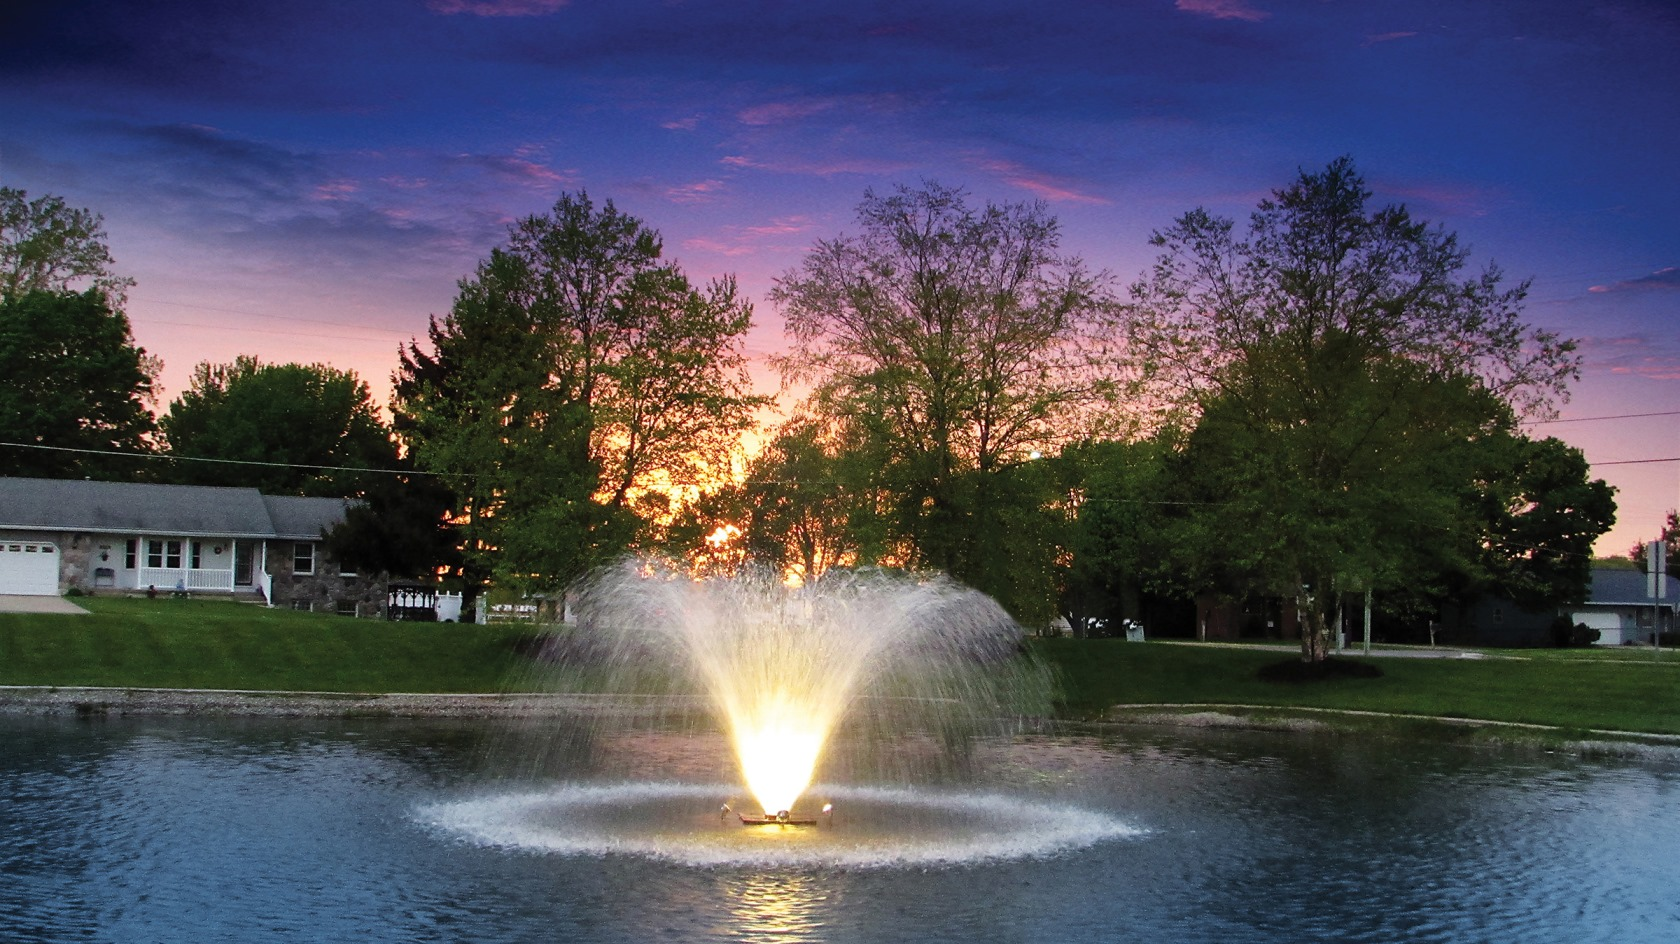 Stainless Steel LED Lighting for Pond Fountains and Display Aerators